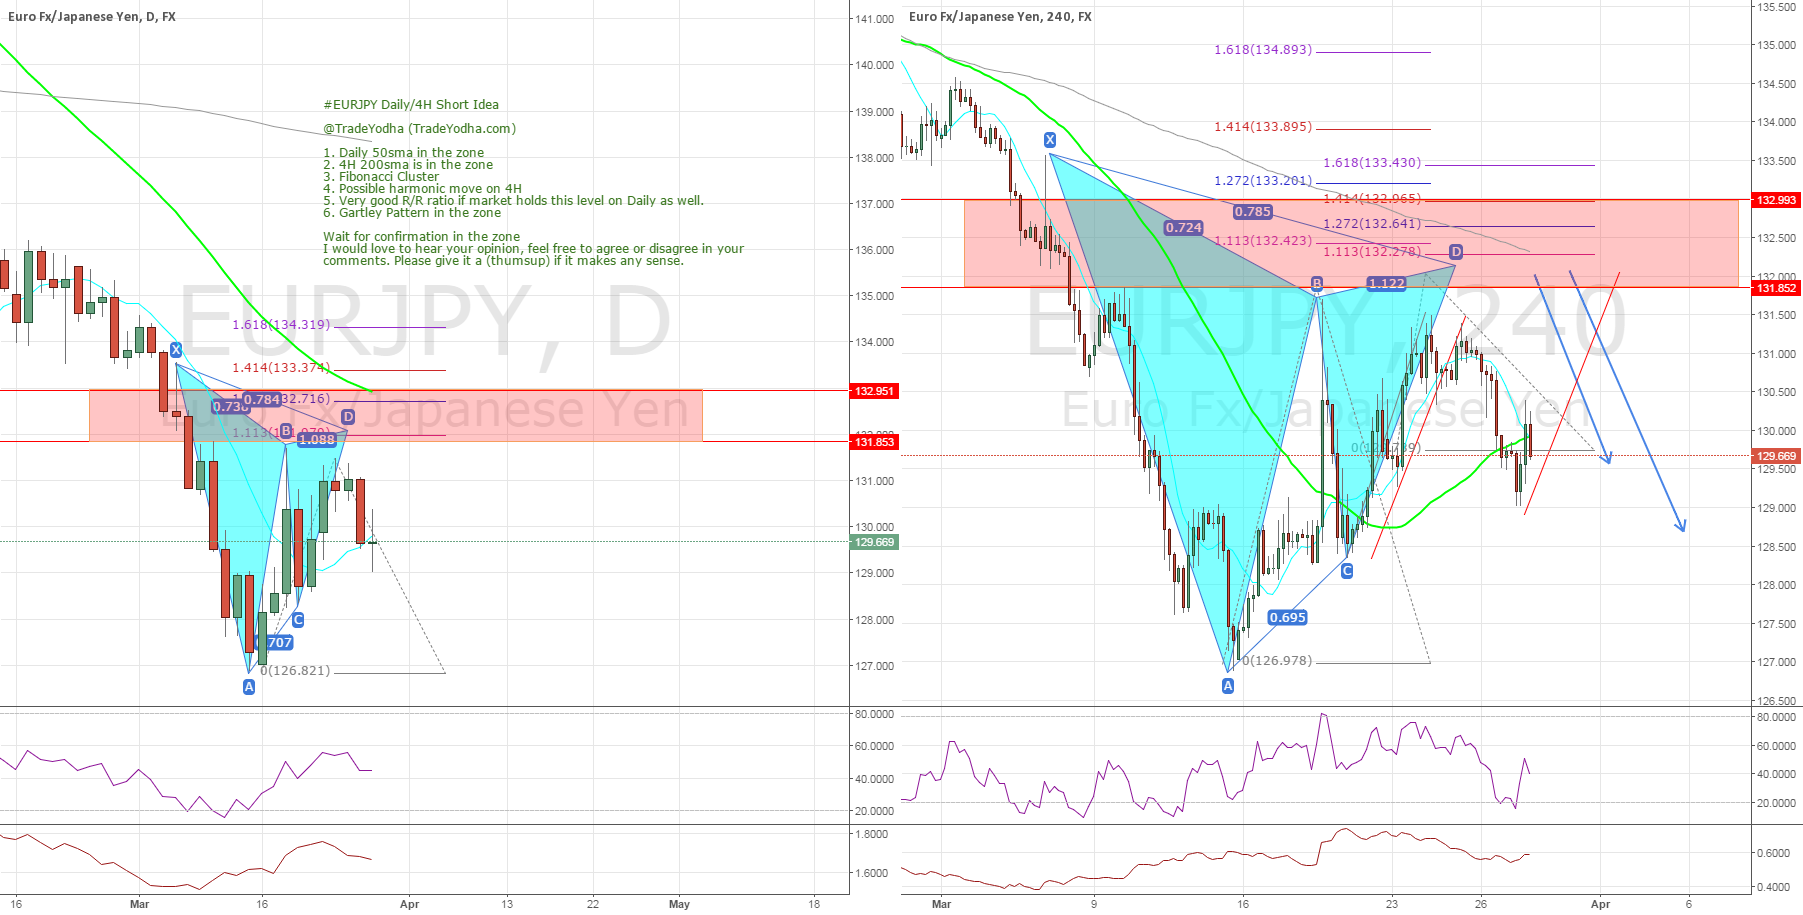 #EURJPY Daily/4H Short Idea (Gartley, Harmonics, Structure)